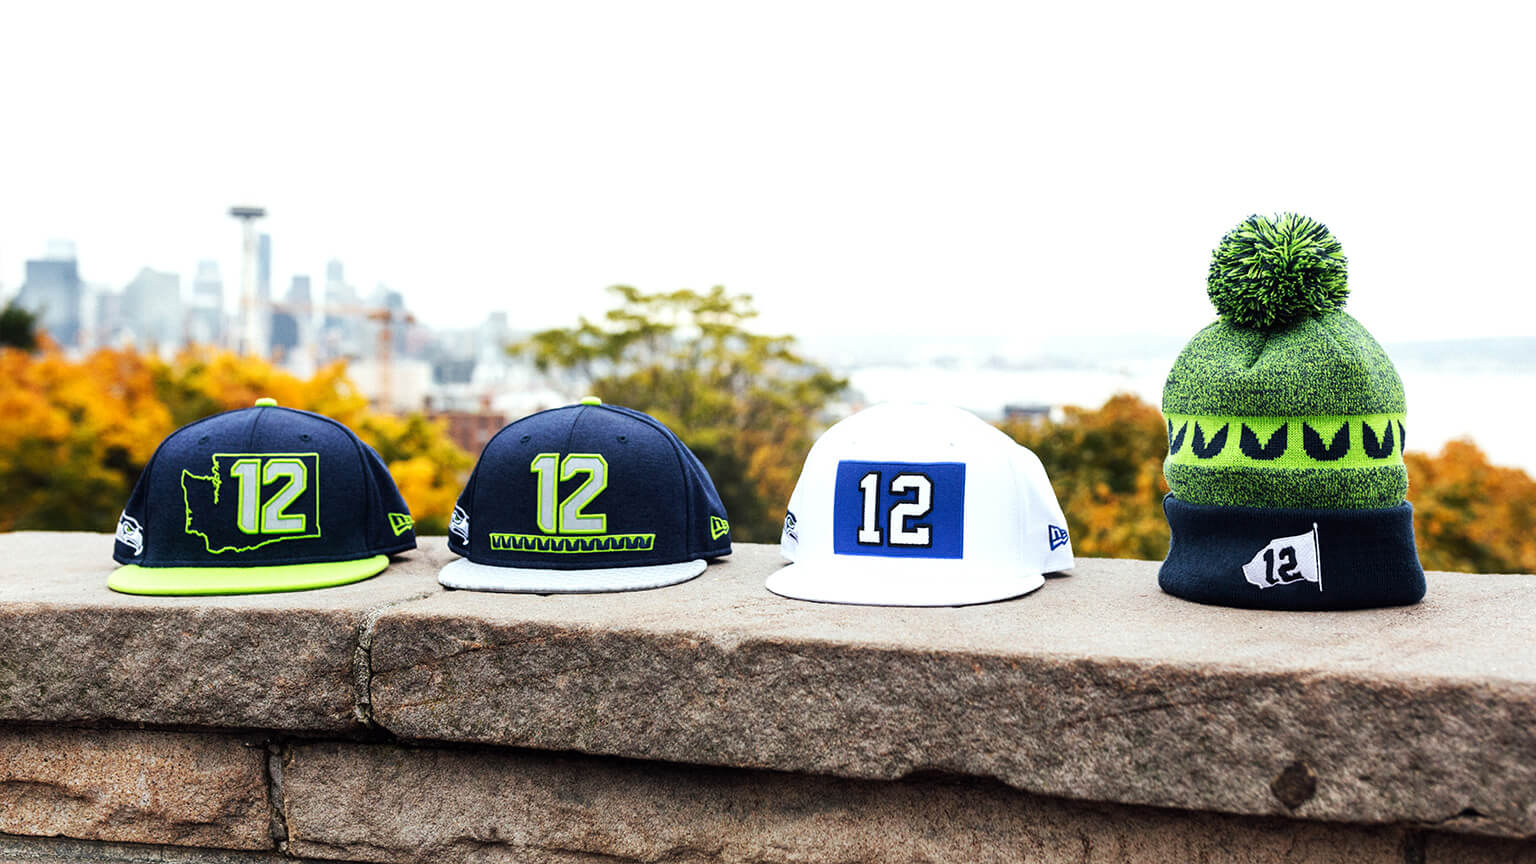 4 New Era hats: blue hat with green bill - Washington state logo outline surrounding the number 12, blue hat with grey bill - 12 logo with feather pattern below, white hat - 12 flag logo, knit hat with pom on top - 12 flag decal in fold up flap